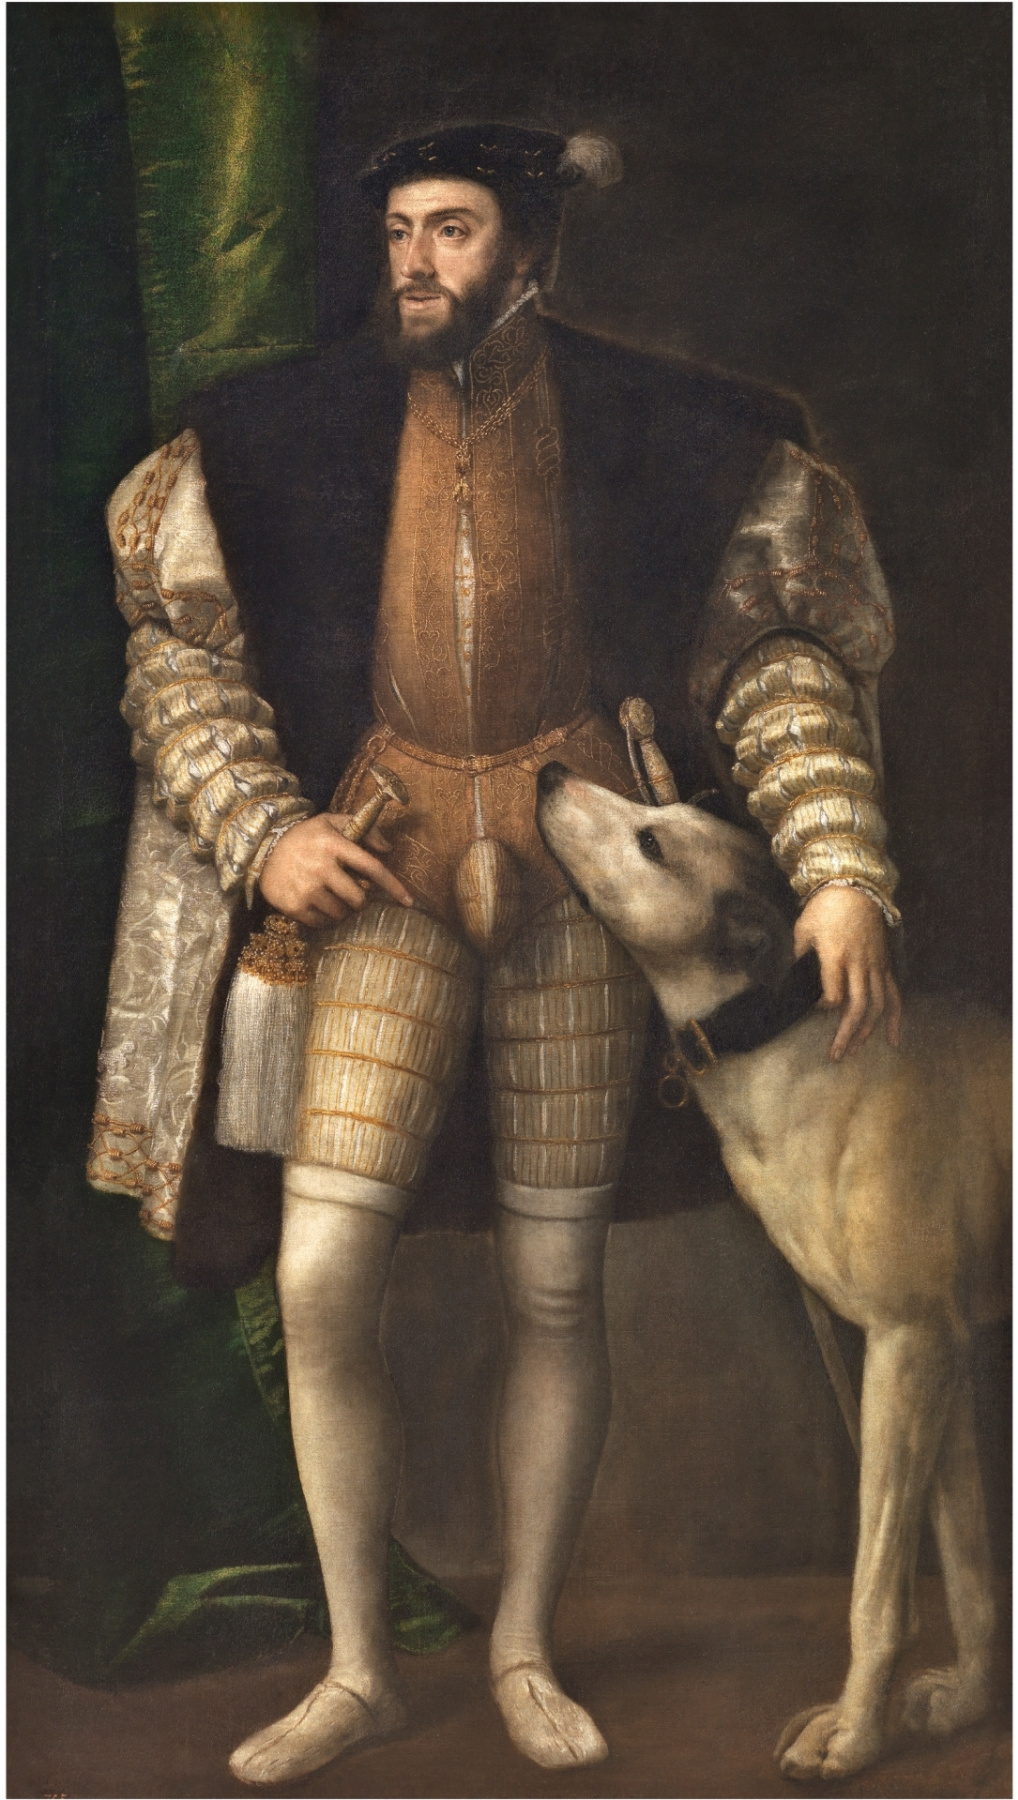 Titian Vecelli. Portrait of Emperor Charles V with a dog